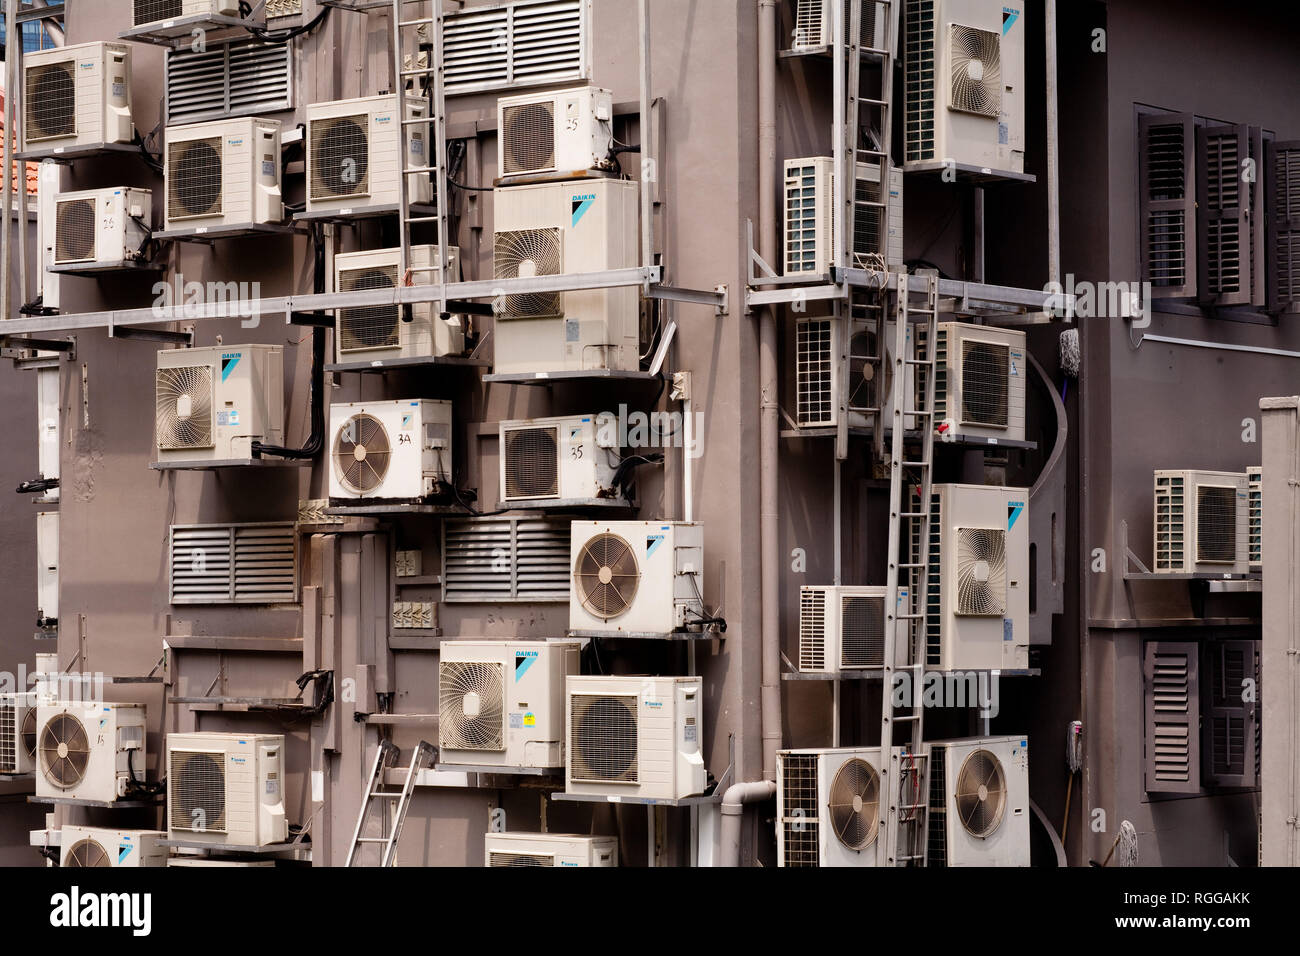 Masses of air conditioning units on the side of a block of flats, Singapore. - Stock Image